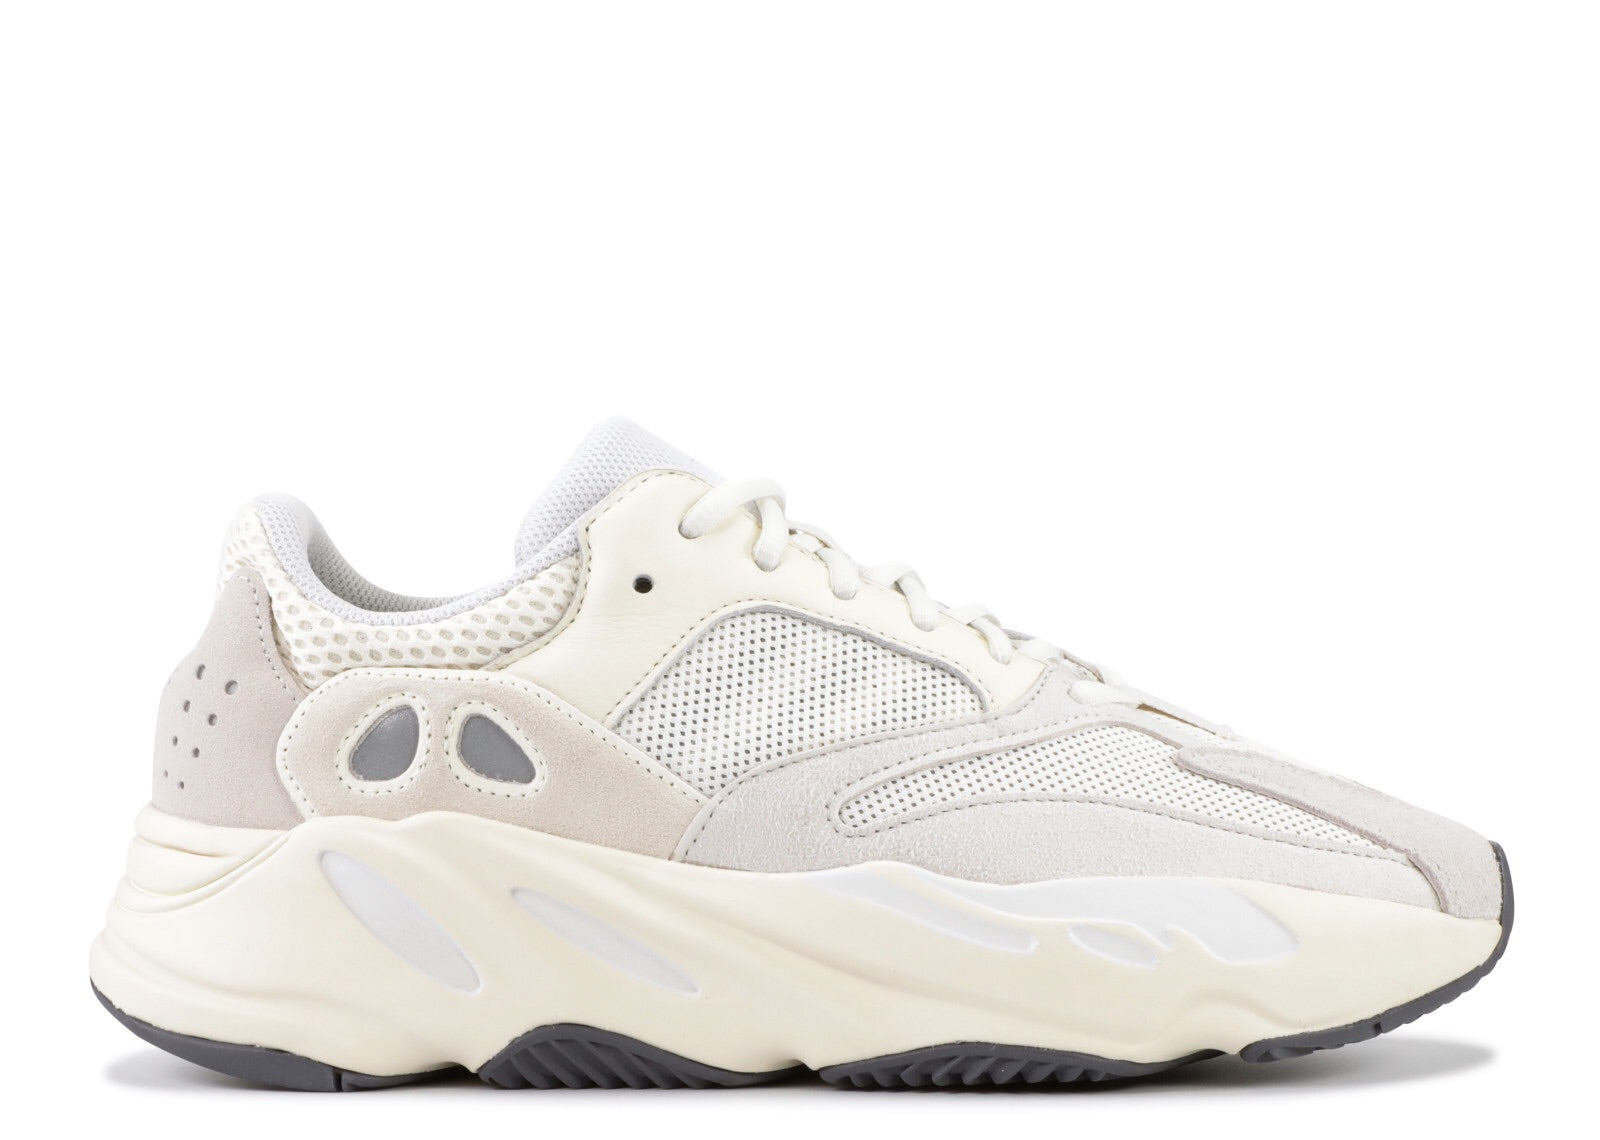 timeless design 265f4 49966 Yeezy Boost 700 Analog